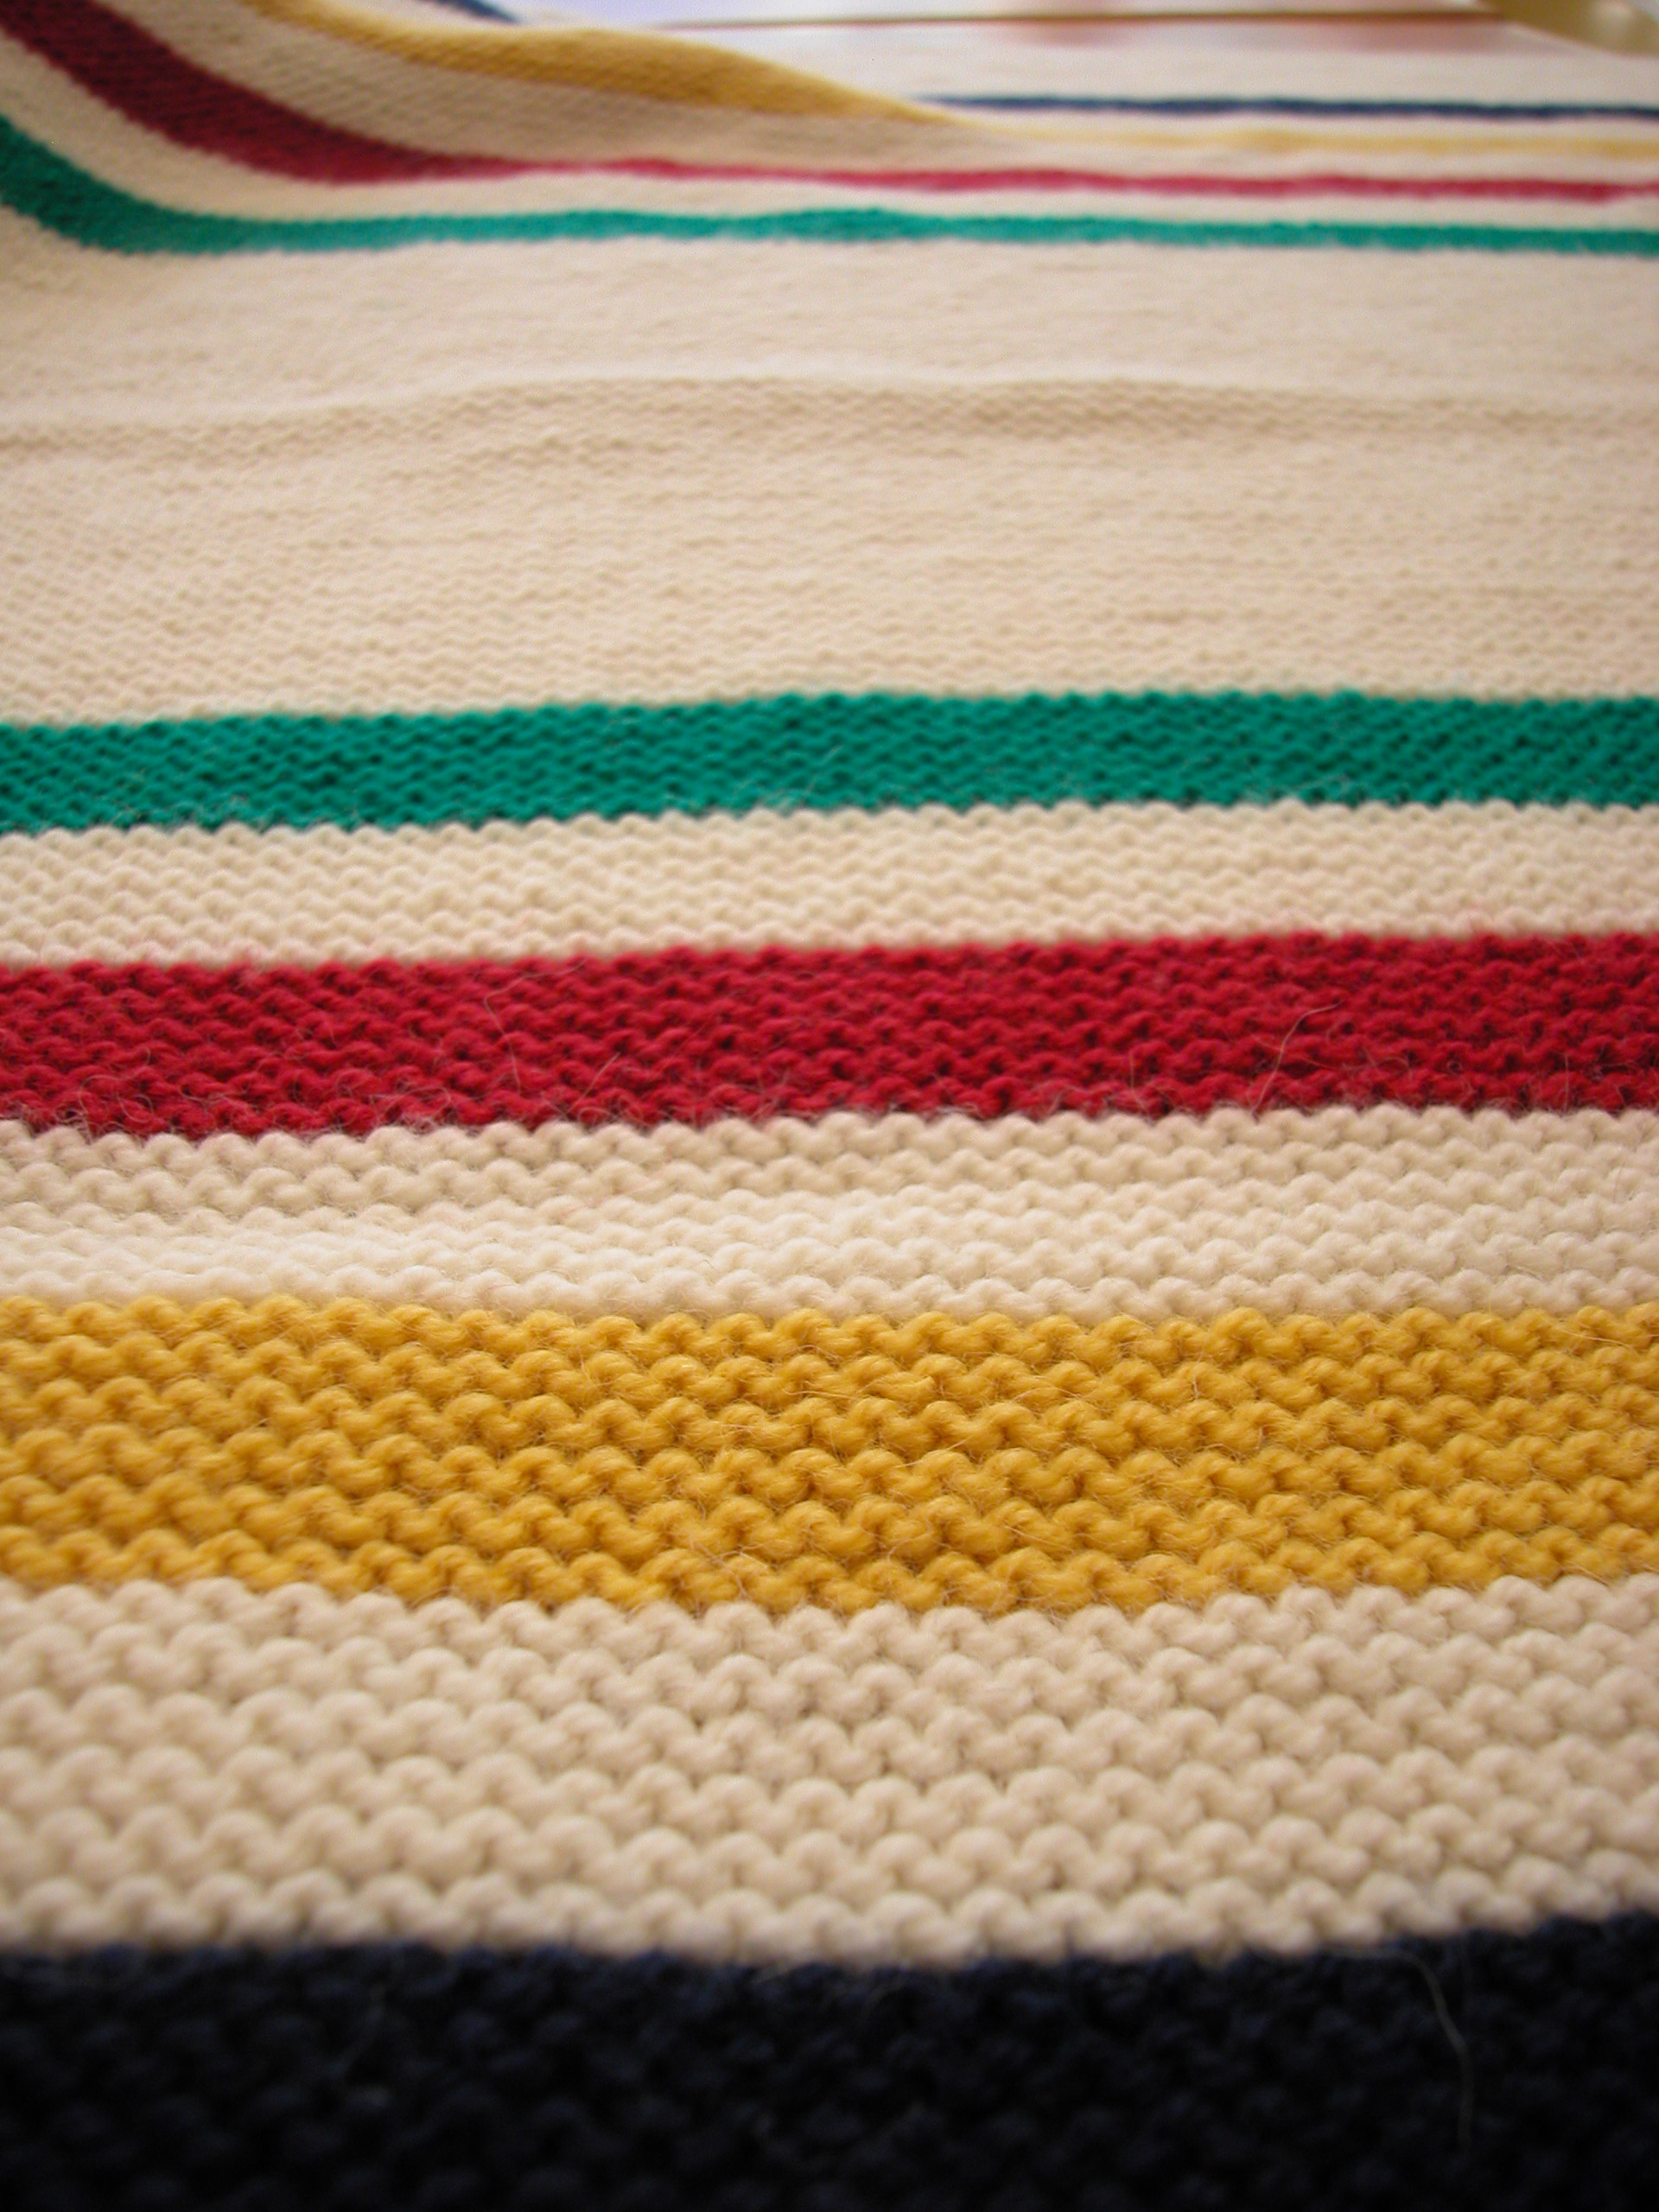 Knitting Pattern For Hudson Bay Blanket : On the Needles the knit cafe